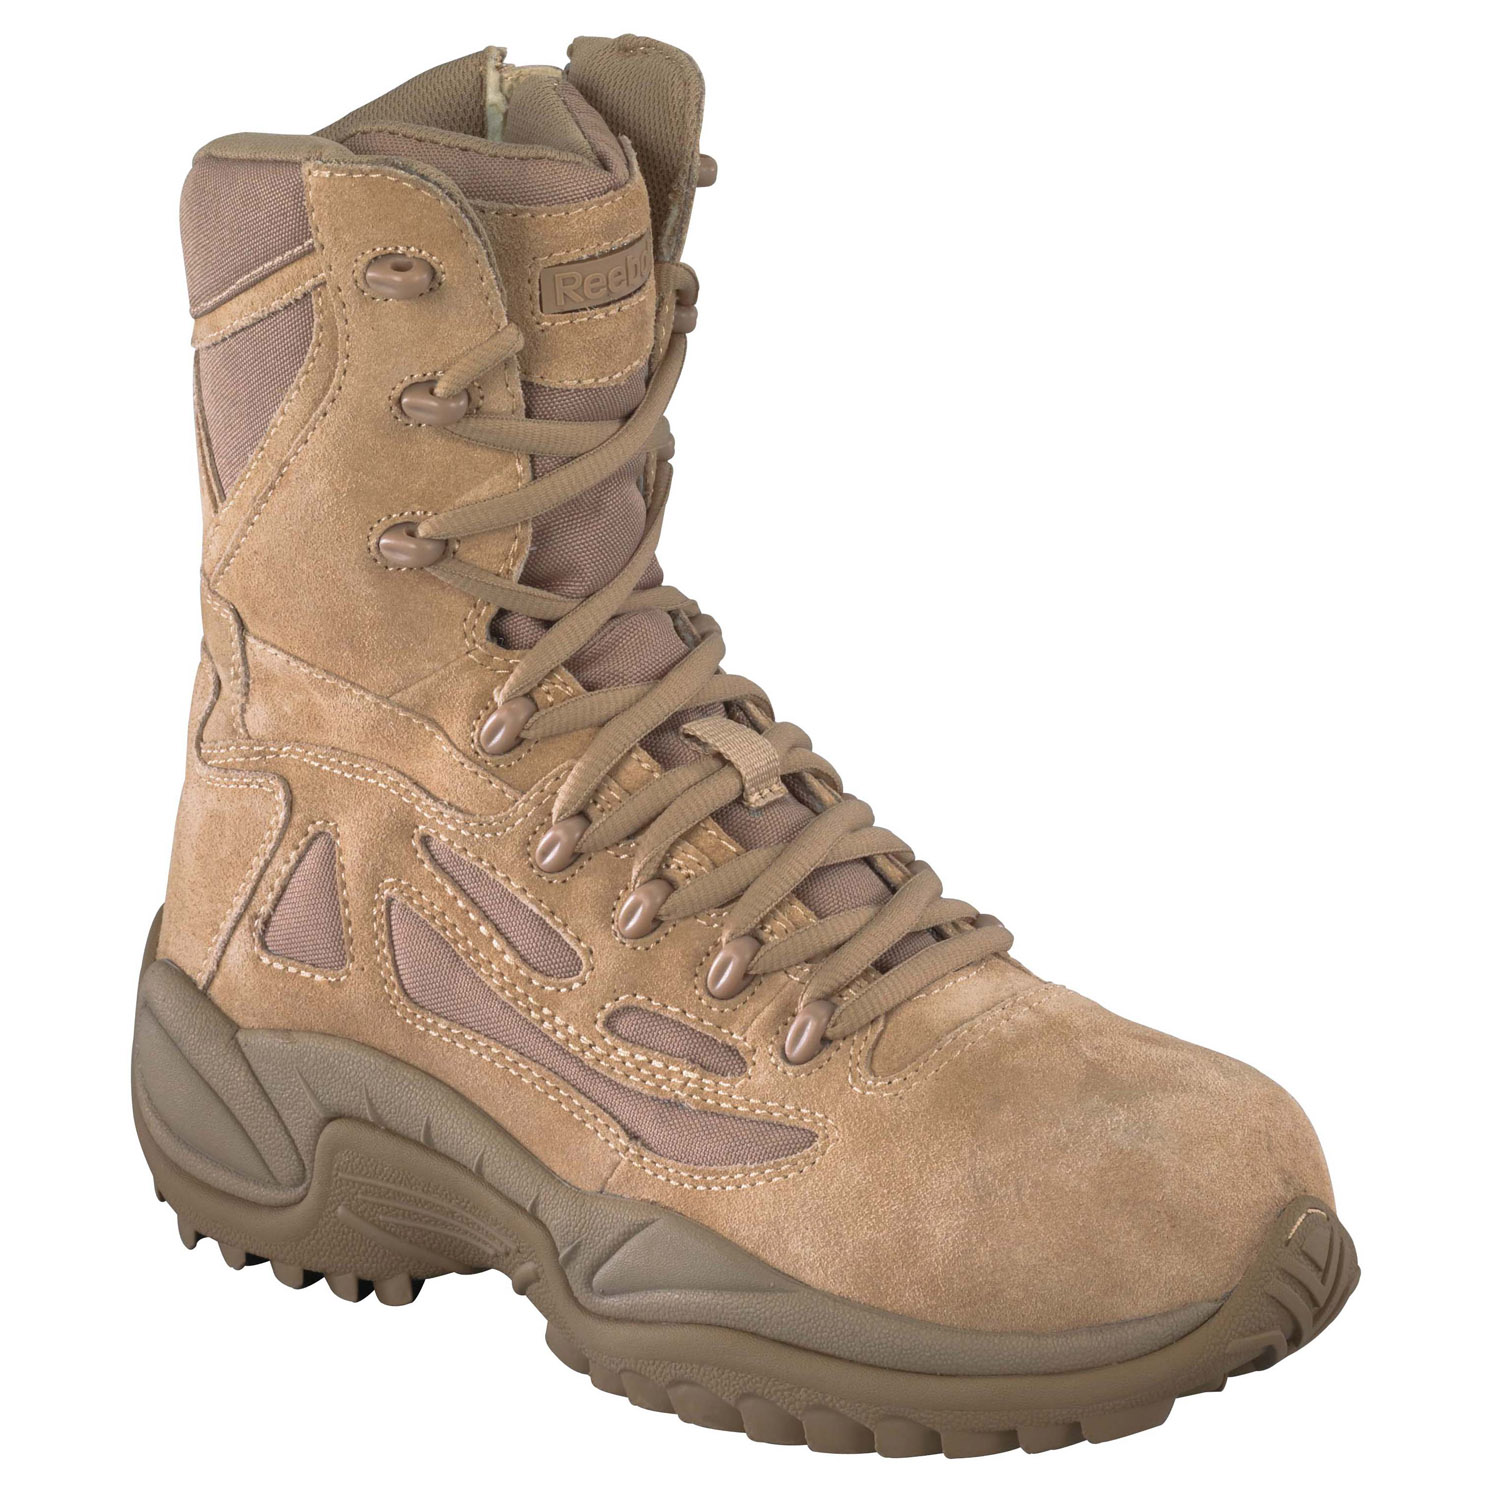 "Reebok Women's 8"" Side Zip Composite Toe Boot"